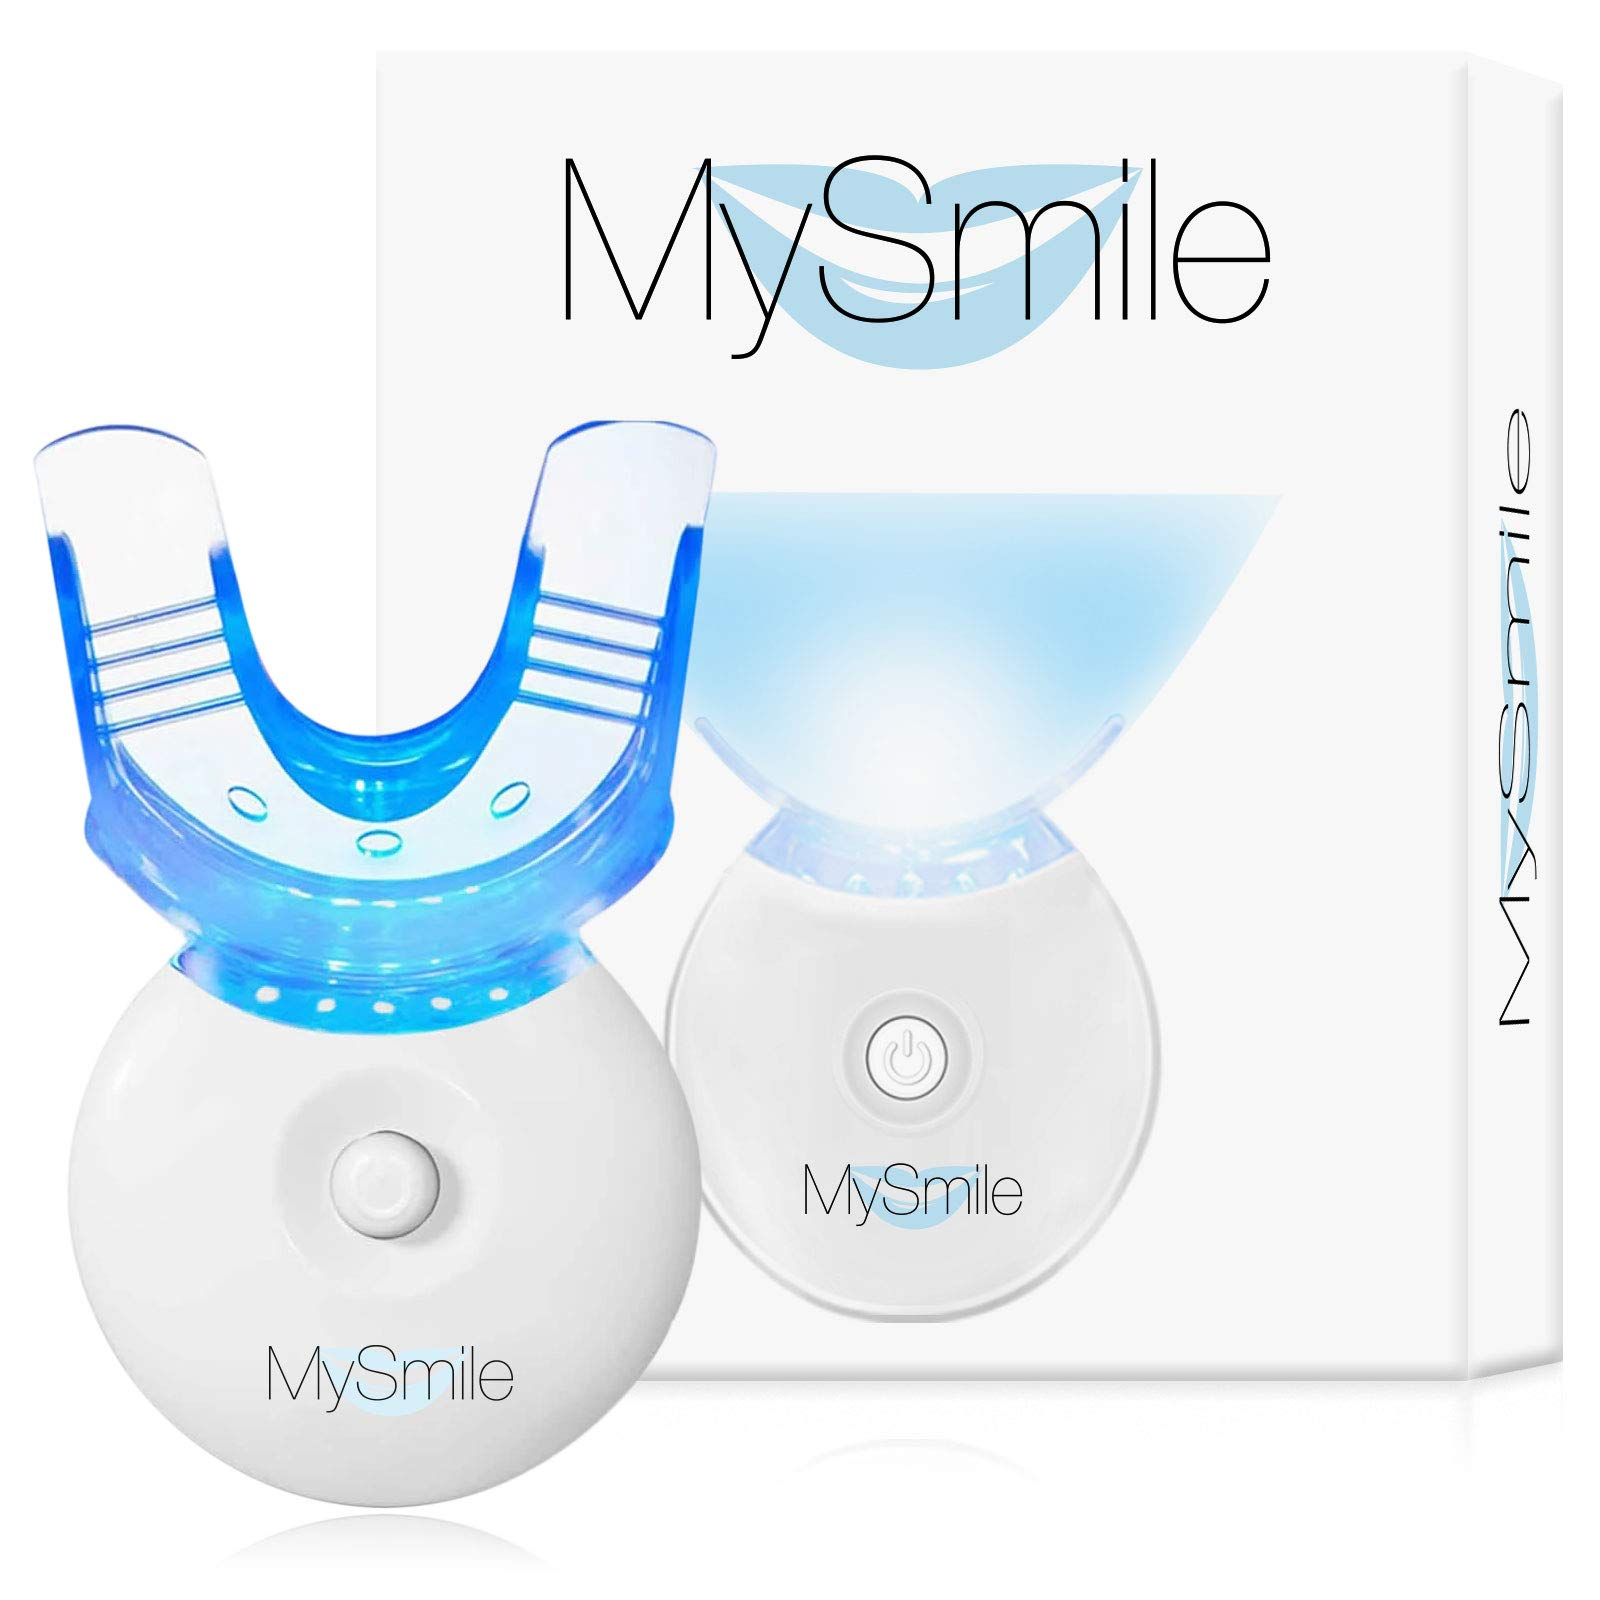 MySmile Teeth Whitening Light Fast & Effective Teeth Whitening with Blue LED Accelerator Light Non-Sensitive Professional Teeth Whitener with Mouth Tray 5 LED